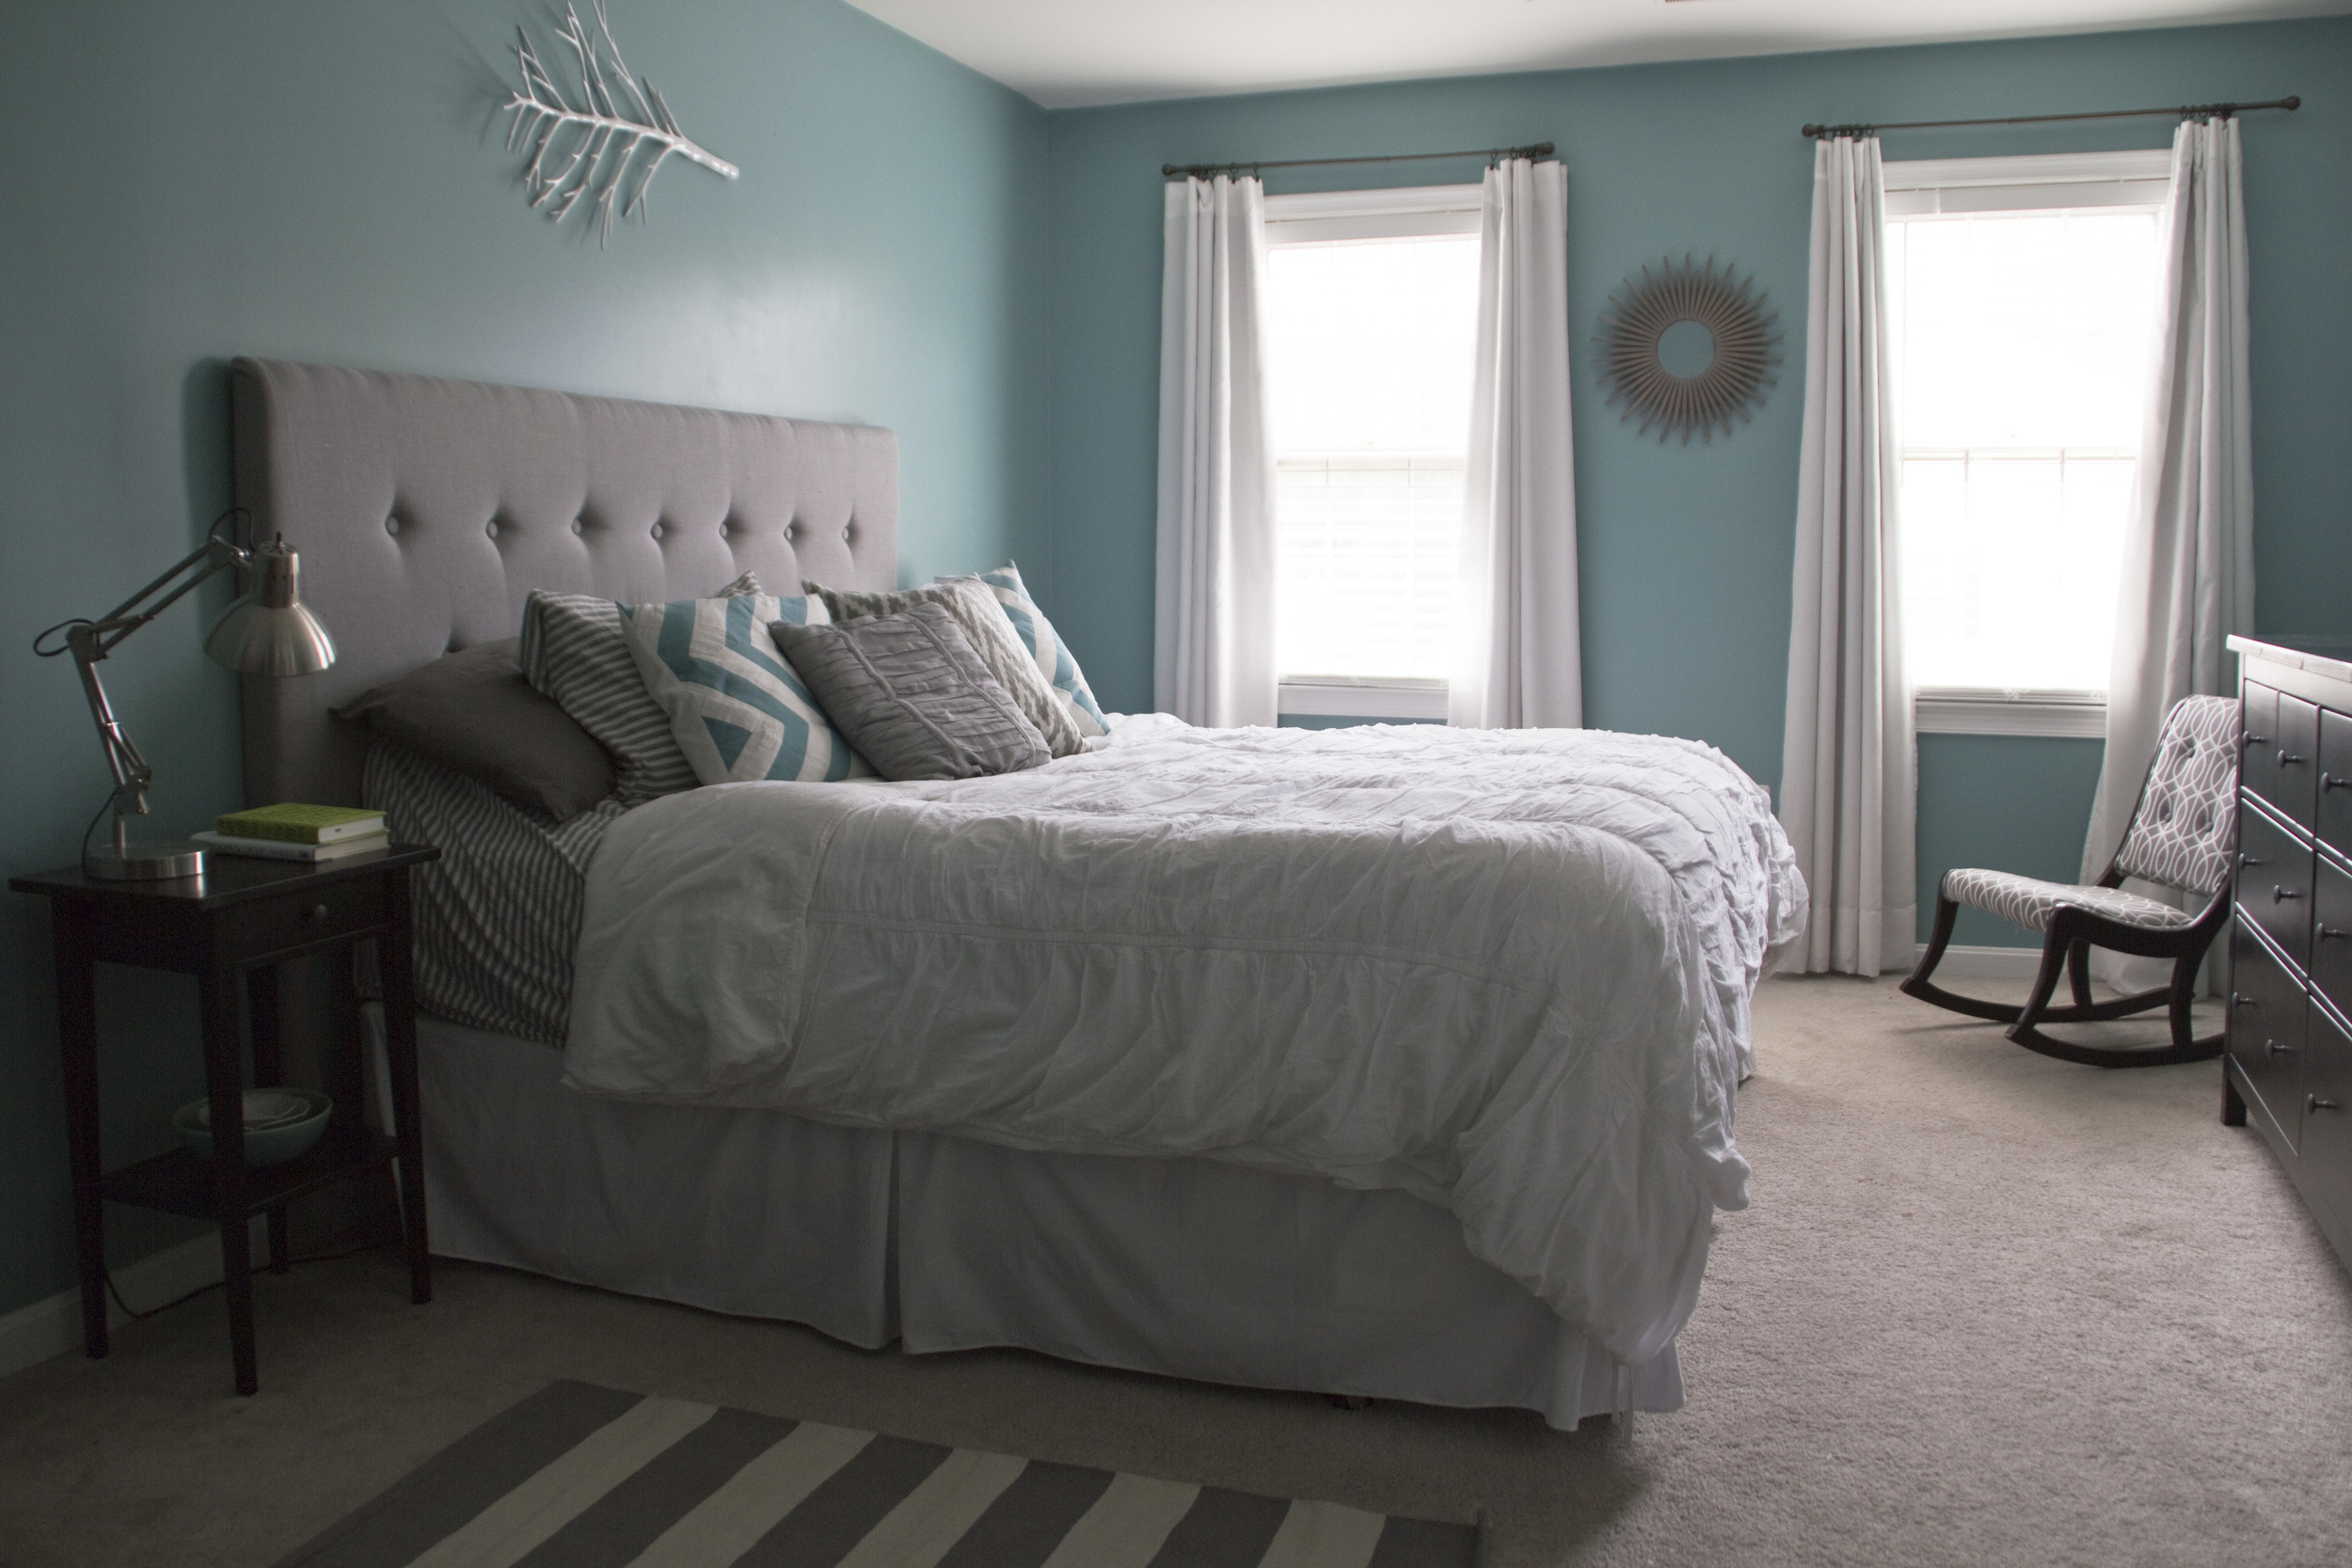 HomeInterior_Bedroom_031313_0014_CC.jpg